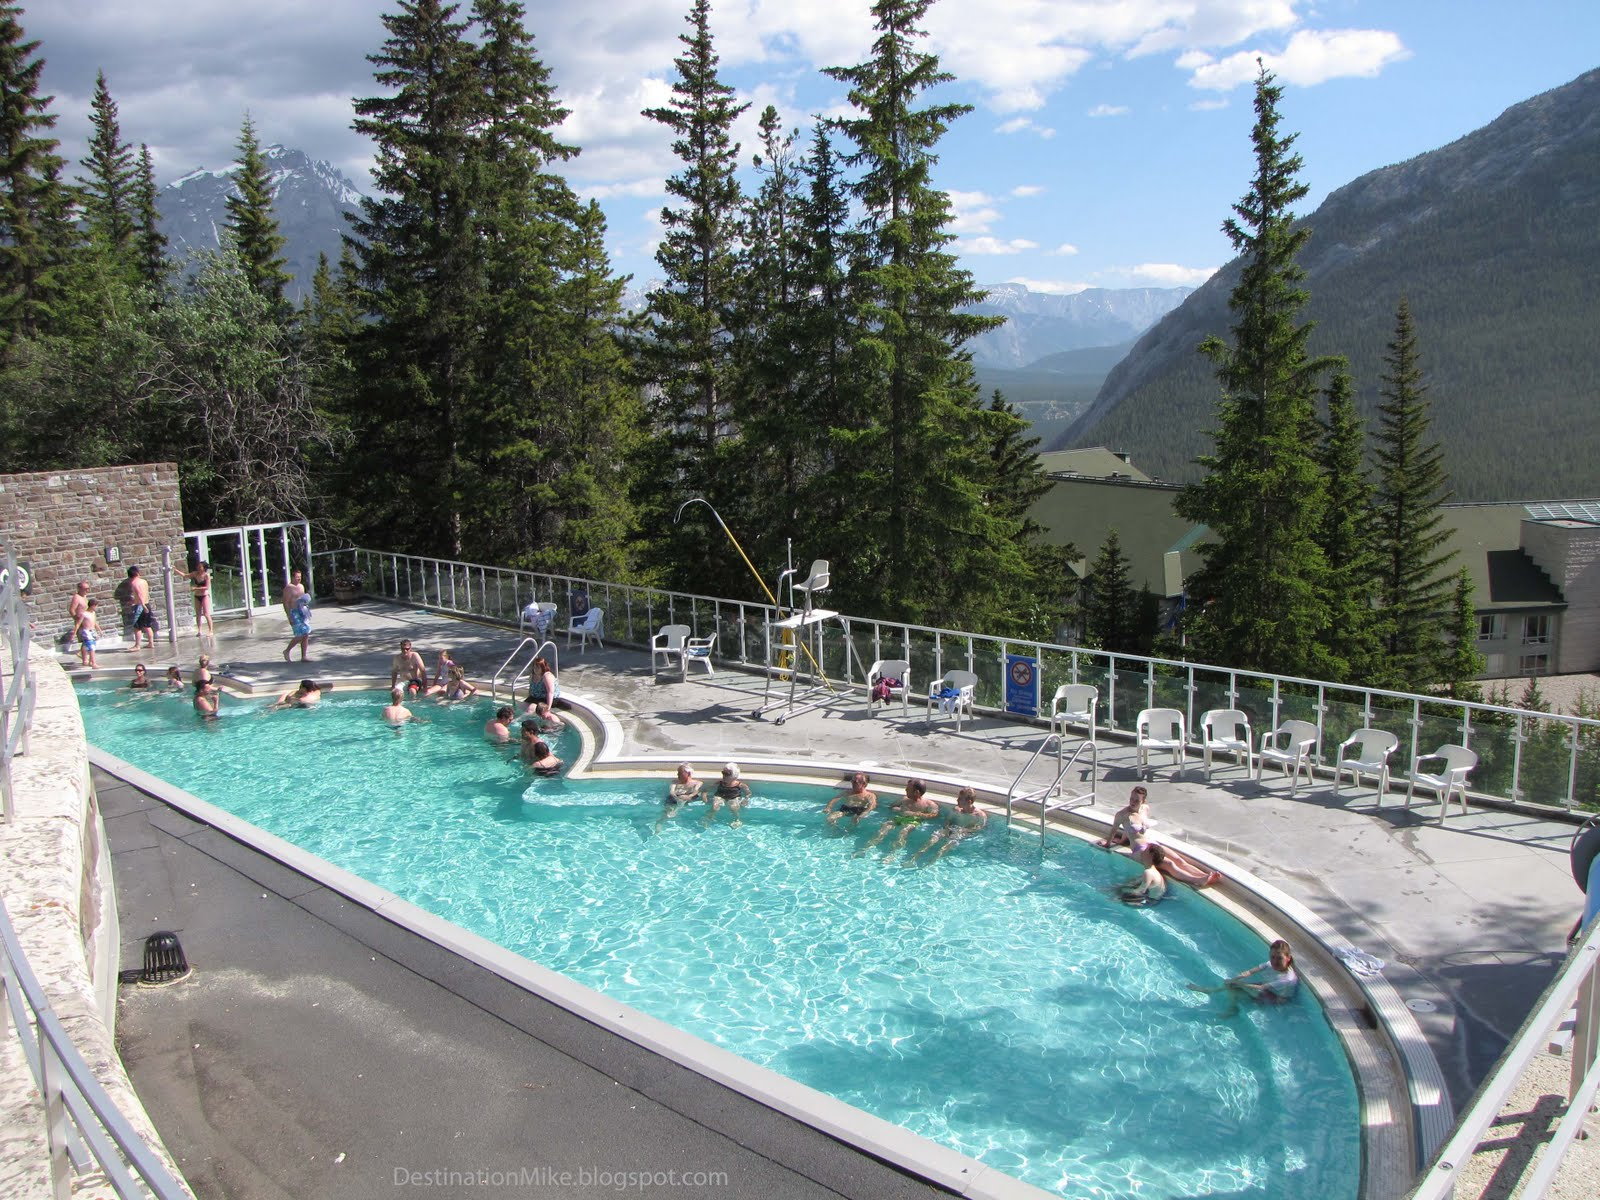 Brewster Attractions Banff National Park, Destination Mike: Relaxing at the Banff Upper Hot Springs